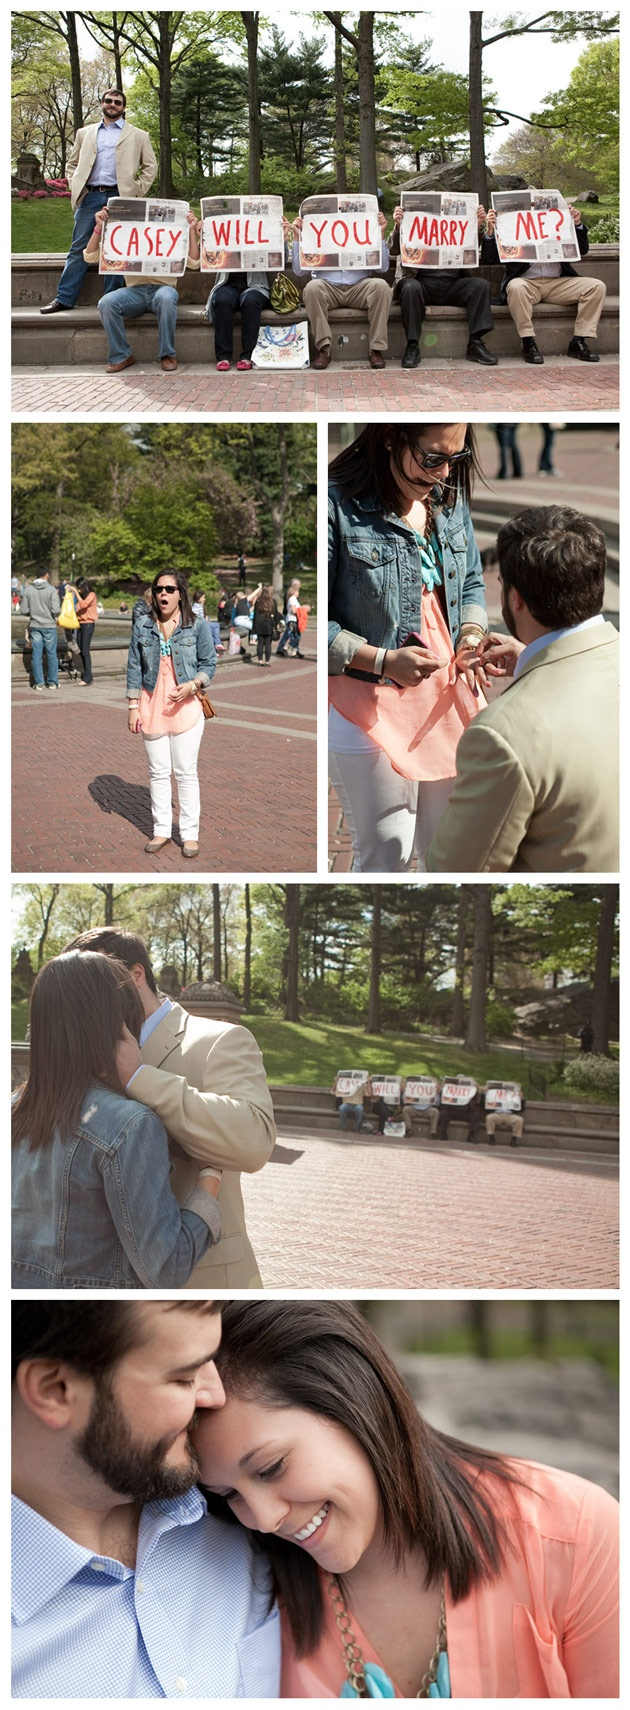 Awesome Surprise Proposal in Central Park. The family secretly hiding behind the newspaper.  © Moss + Isaac mossandisaac.com